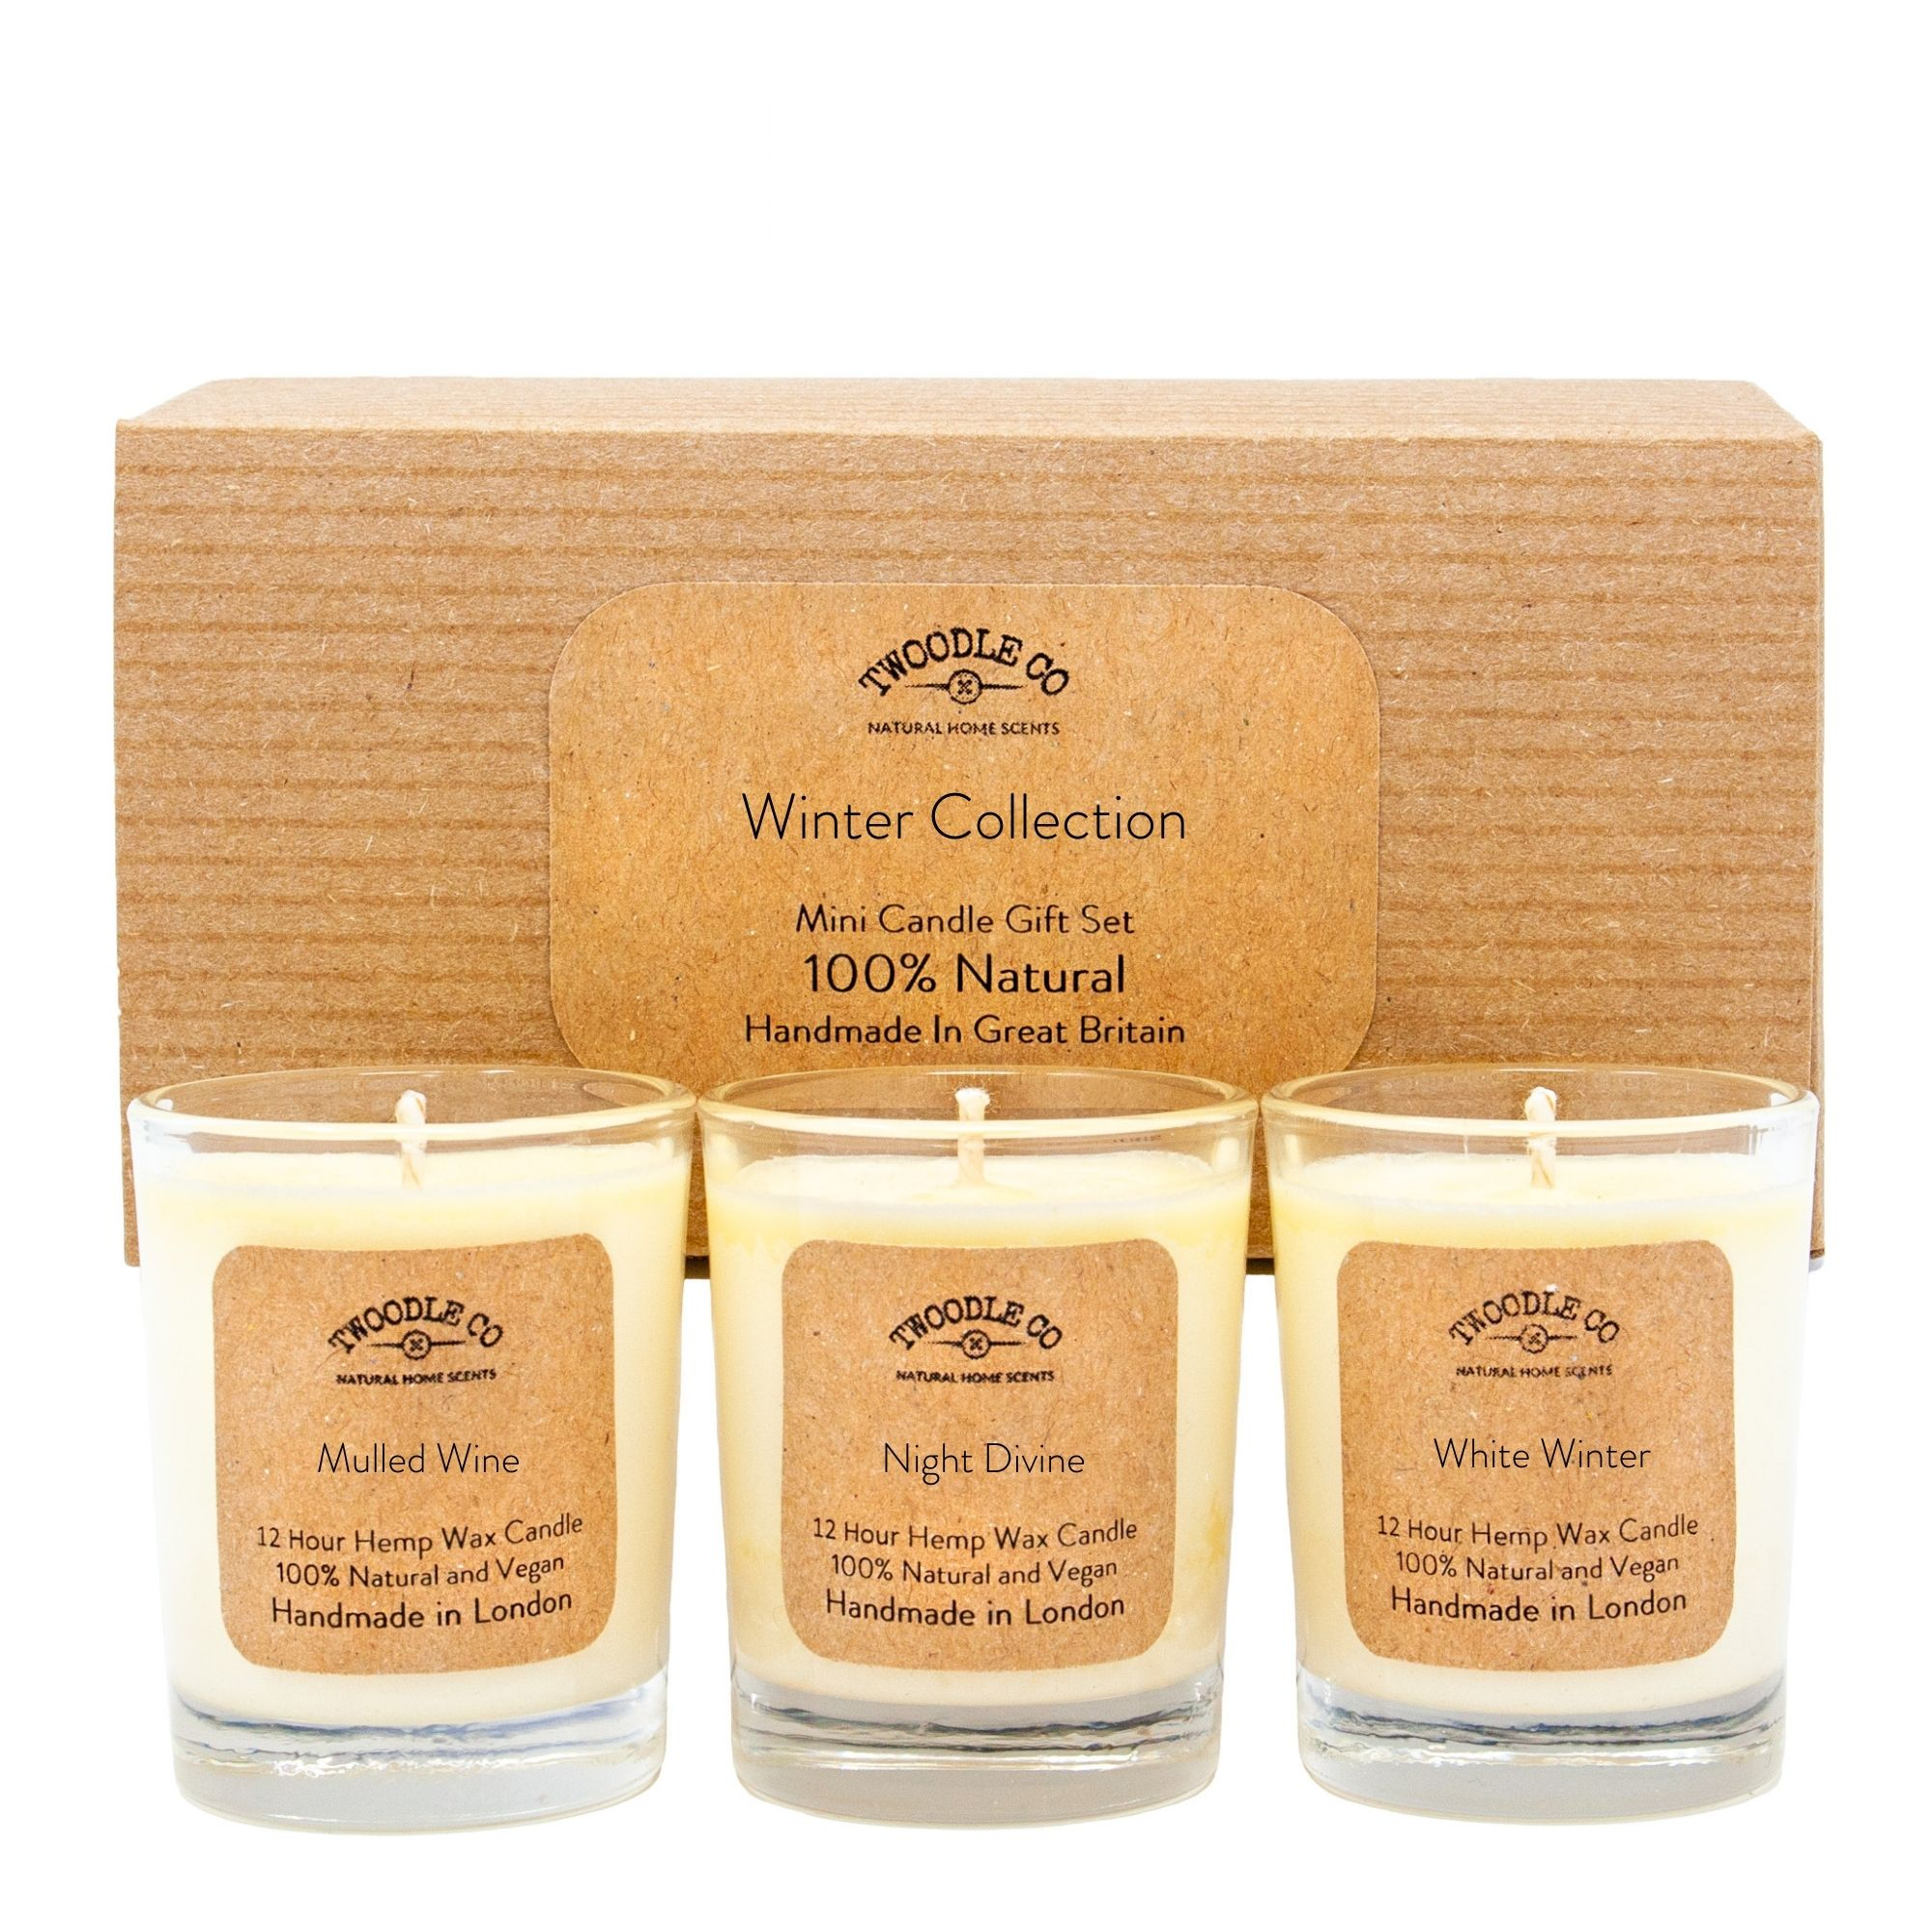 Winter Collection Mini triple candle Gift Set by twoodle co natural home scents